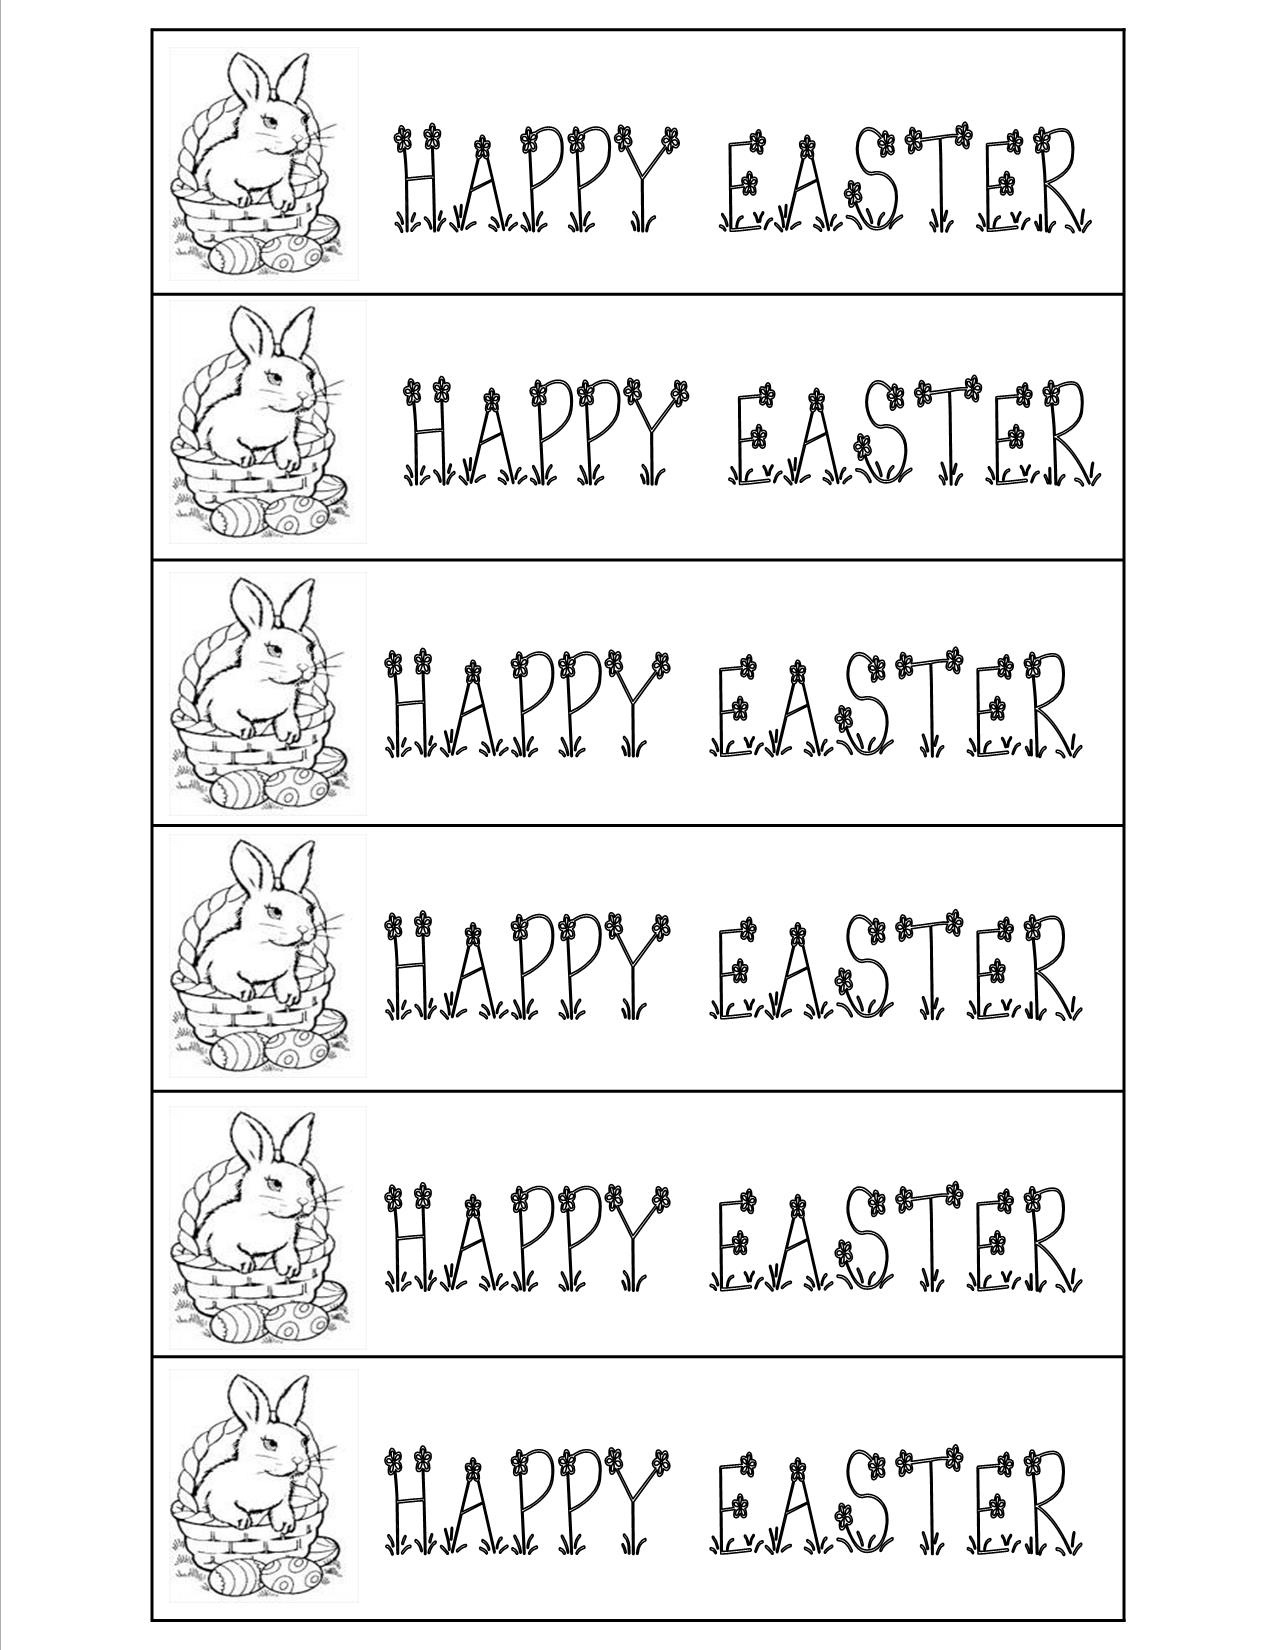 Easter Worksheets And Printouts - Free Printable Easter Worksheets